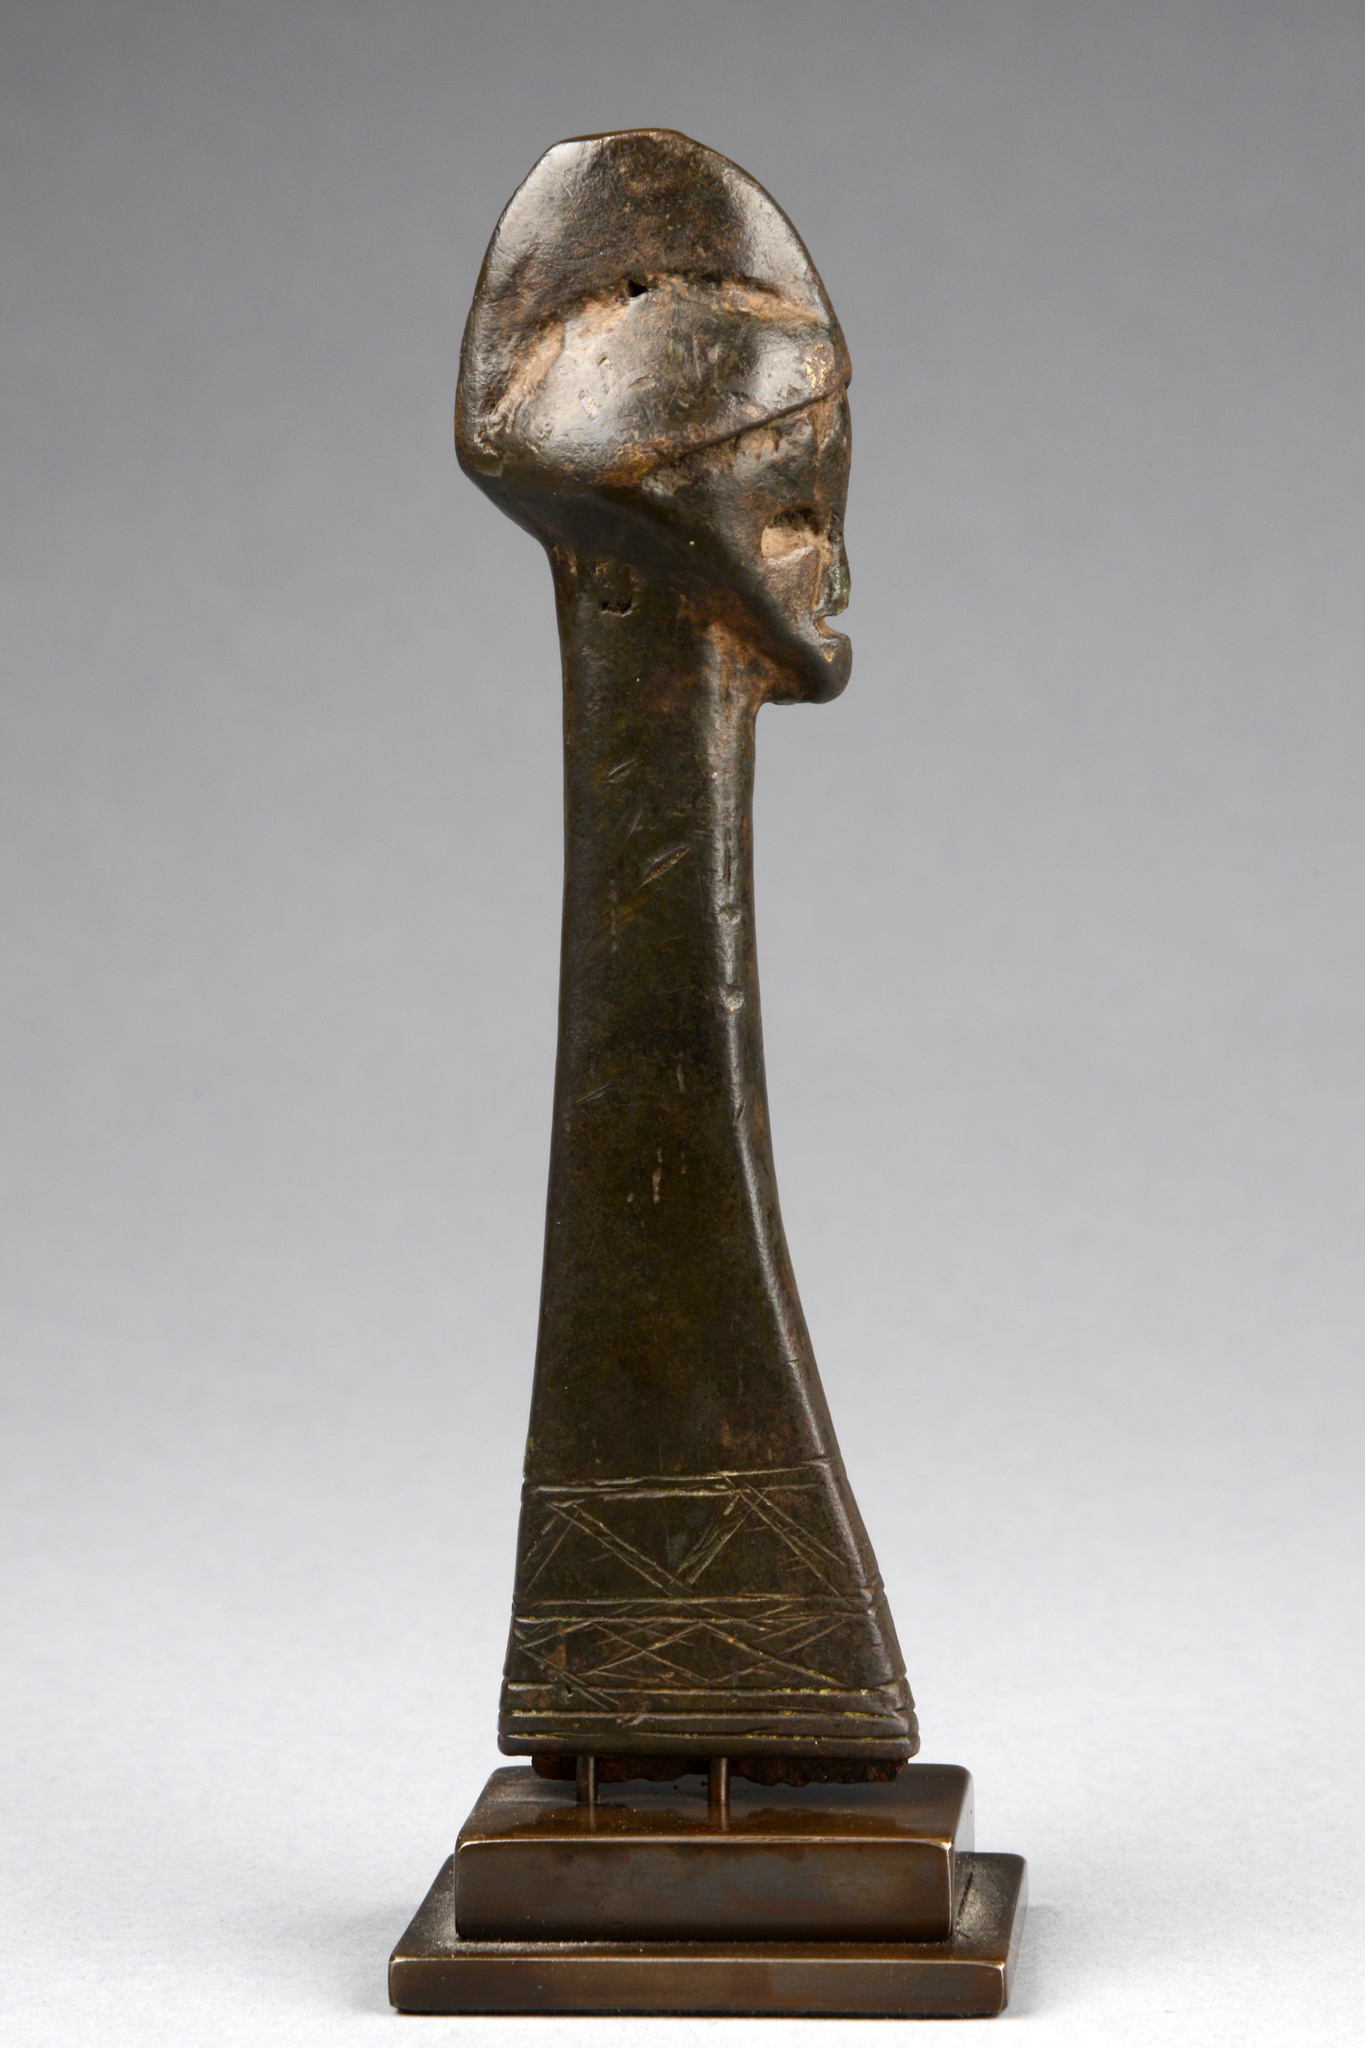 Handle of executioners's sword